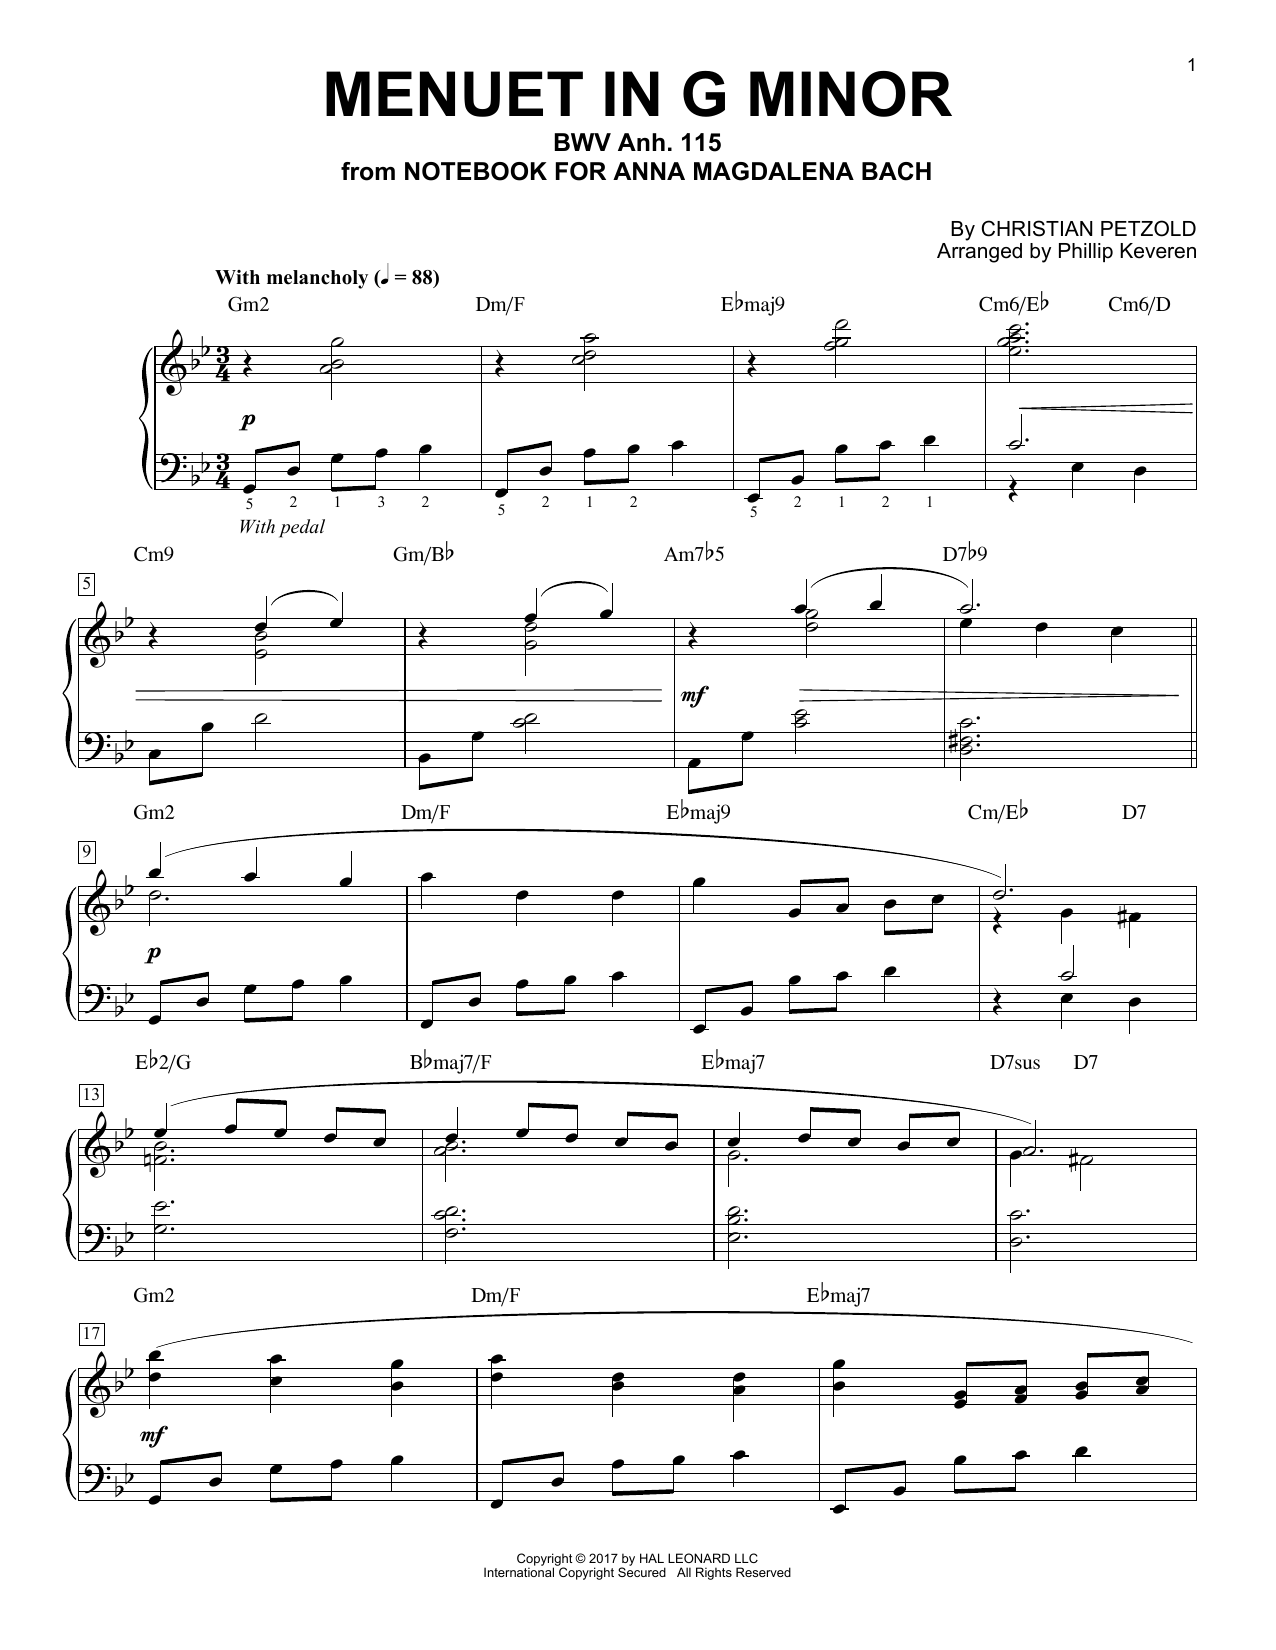 Christian Petzold Menuet In G Minor, BMV Anh. 115 [Jazz version] (arr. Phillip Keveren) sheet music notes and chords. Download Printable PDF.